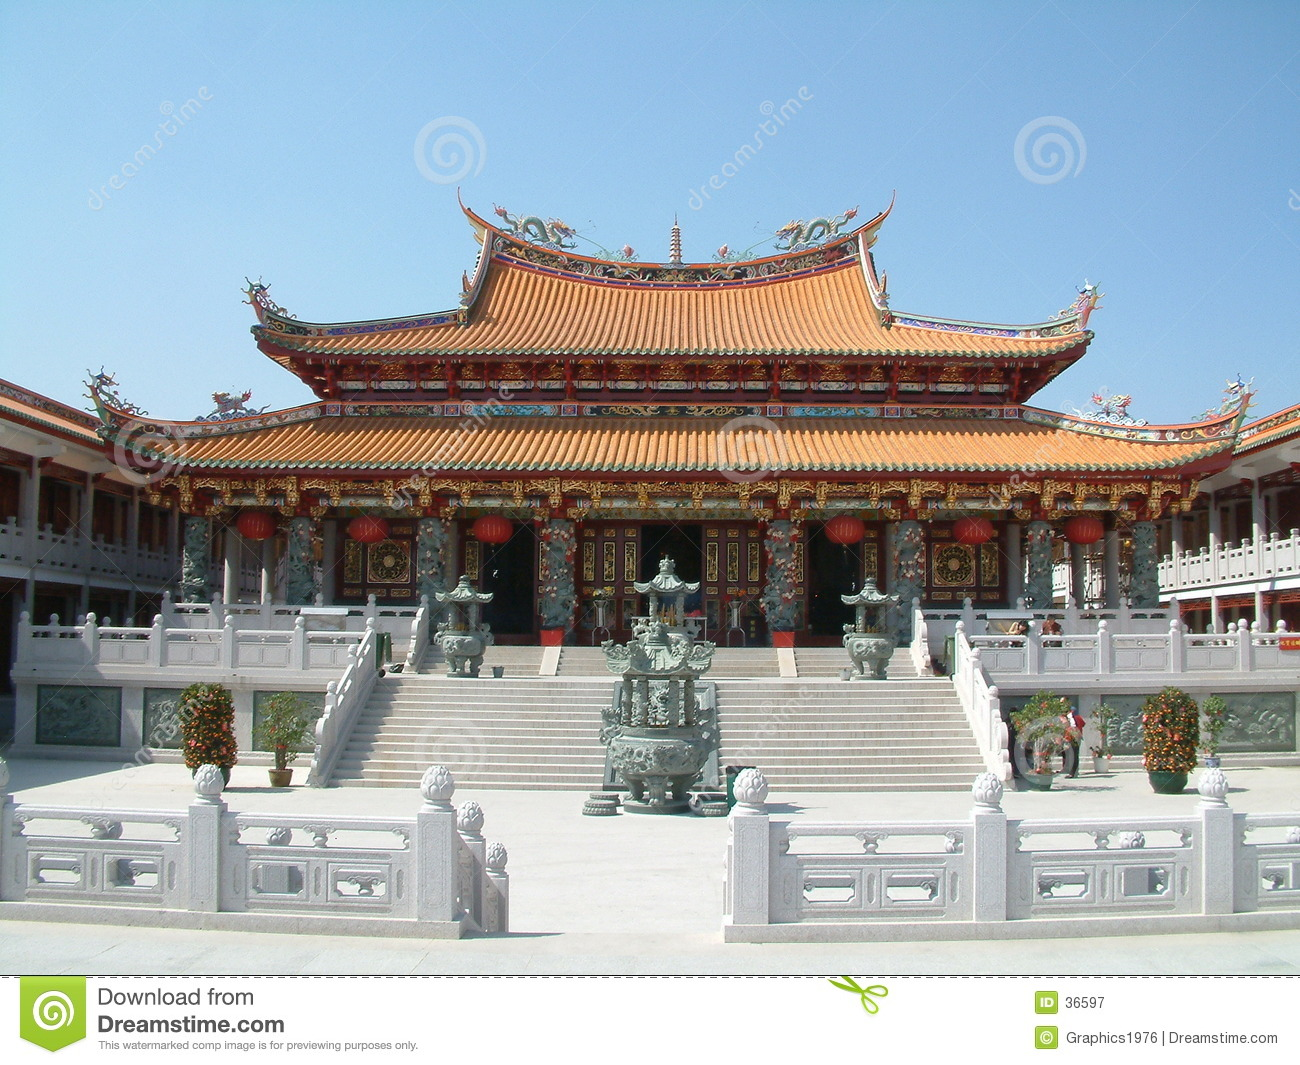 Temple chinois (Macao)